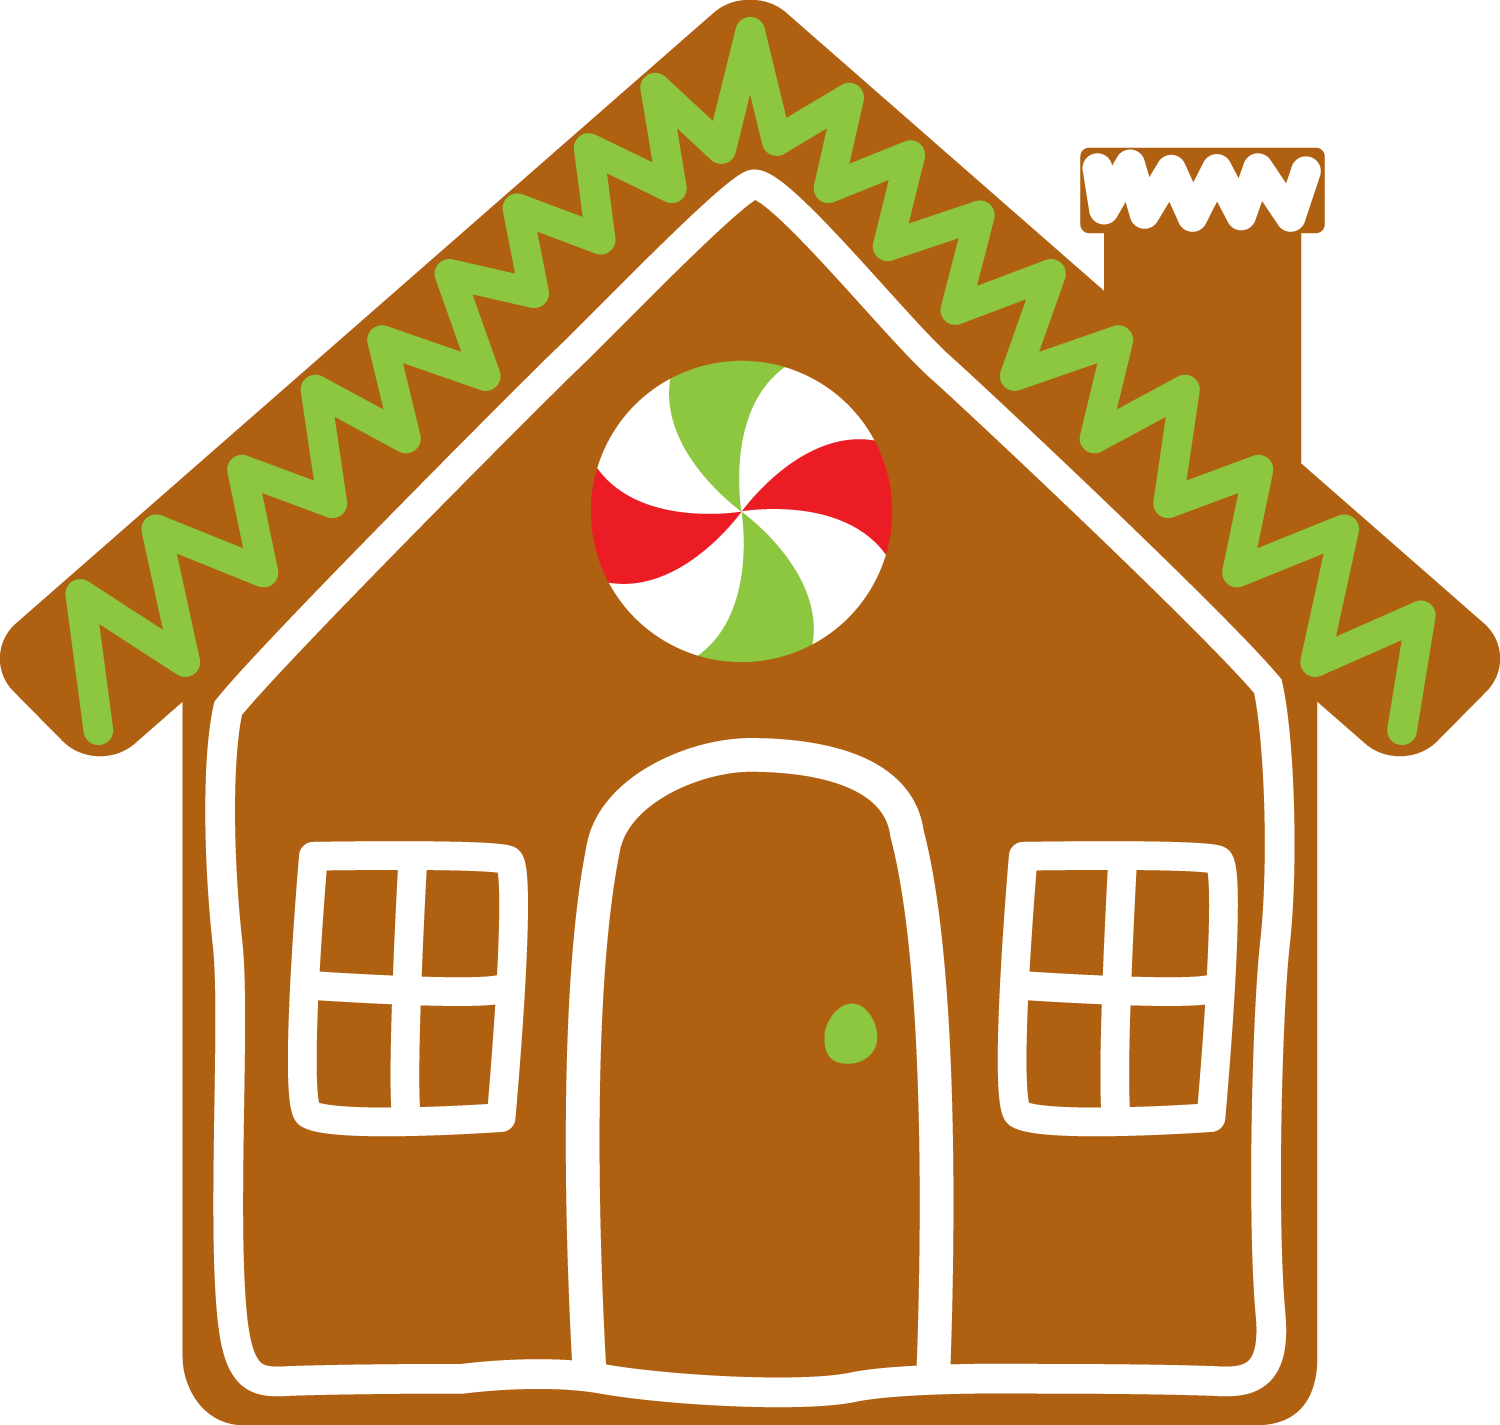 House with christmas lights clipart banner free download Christmas House Clipart at GetDrawings.com | Free for personal use ... banner free download